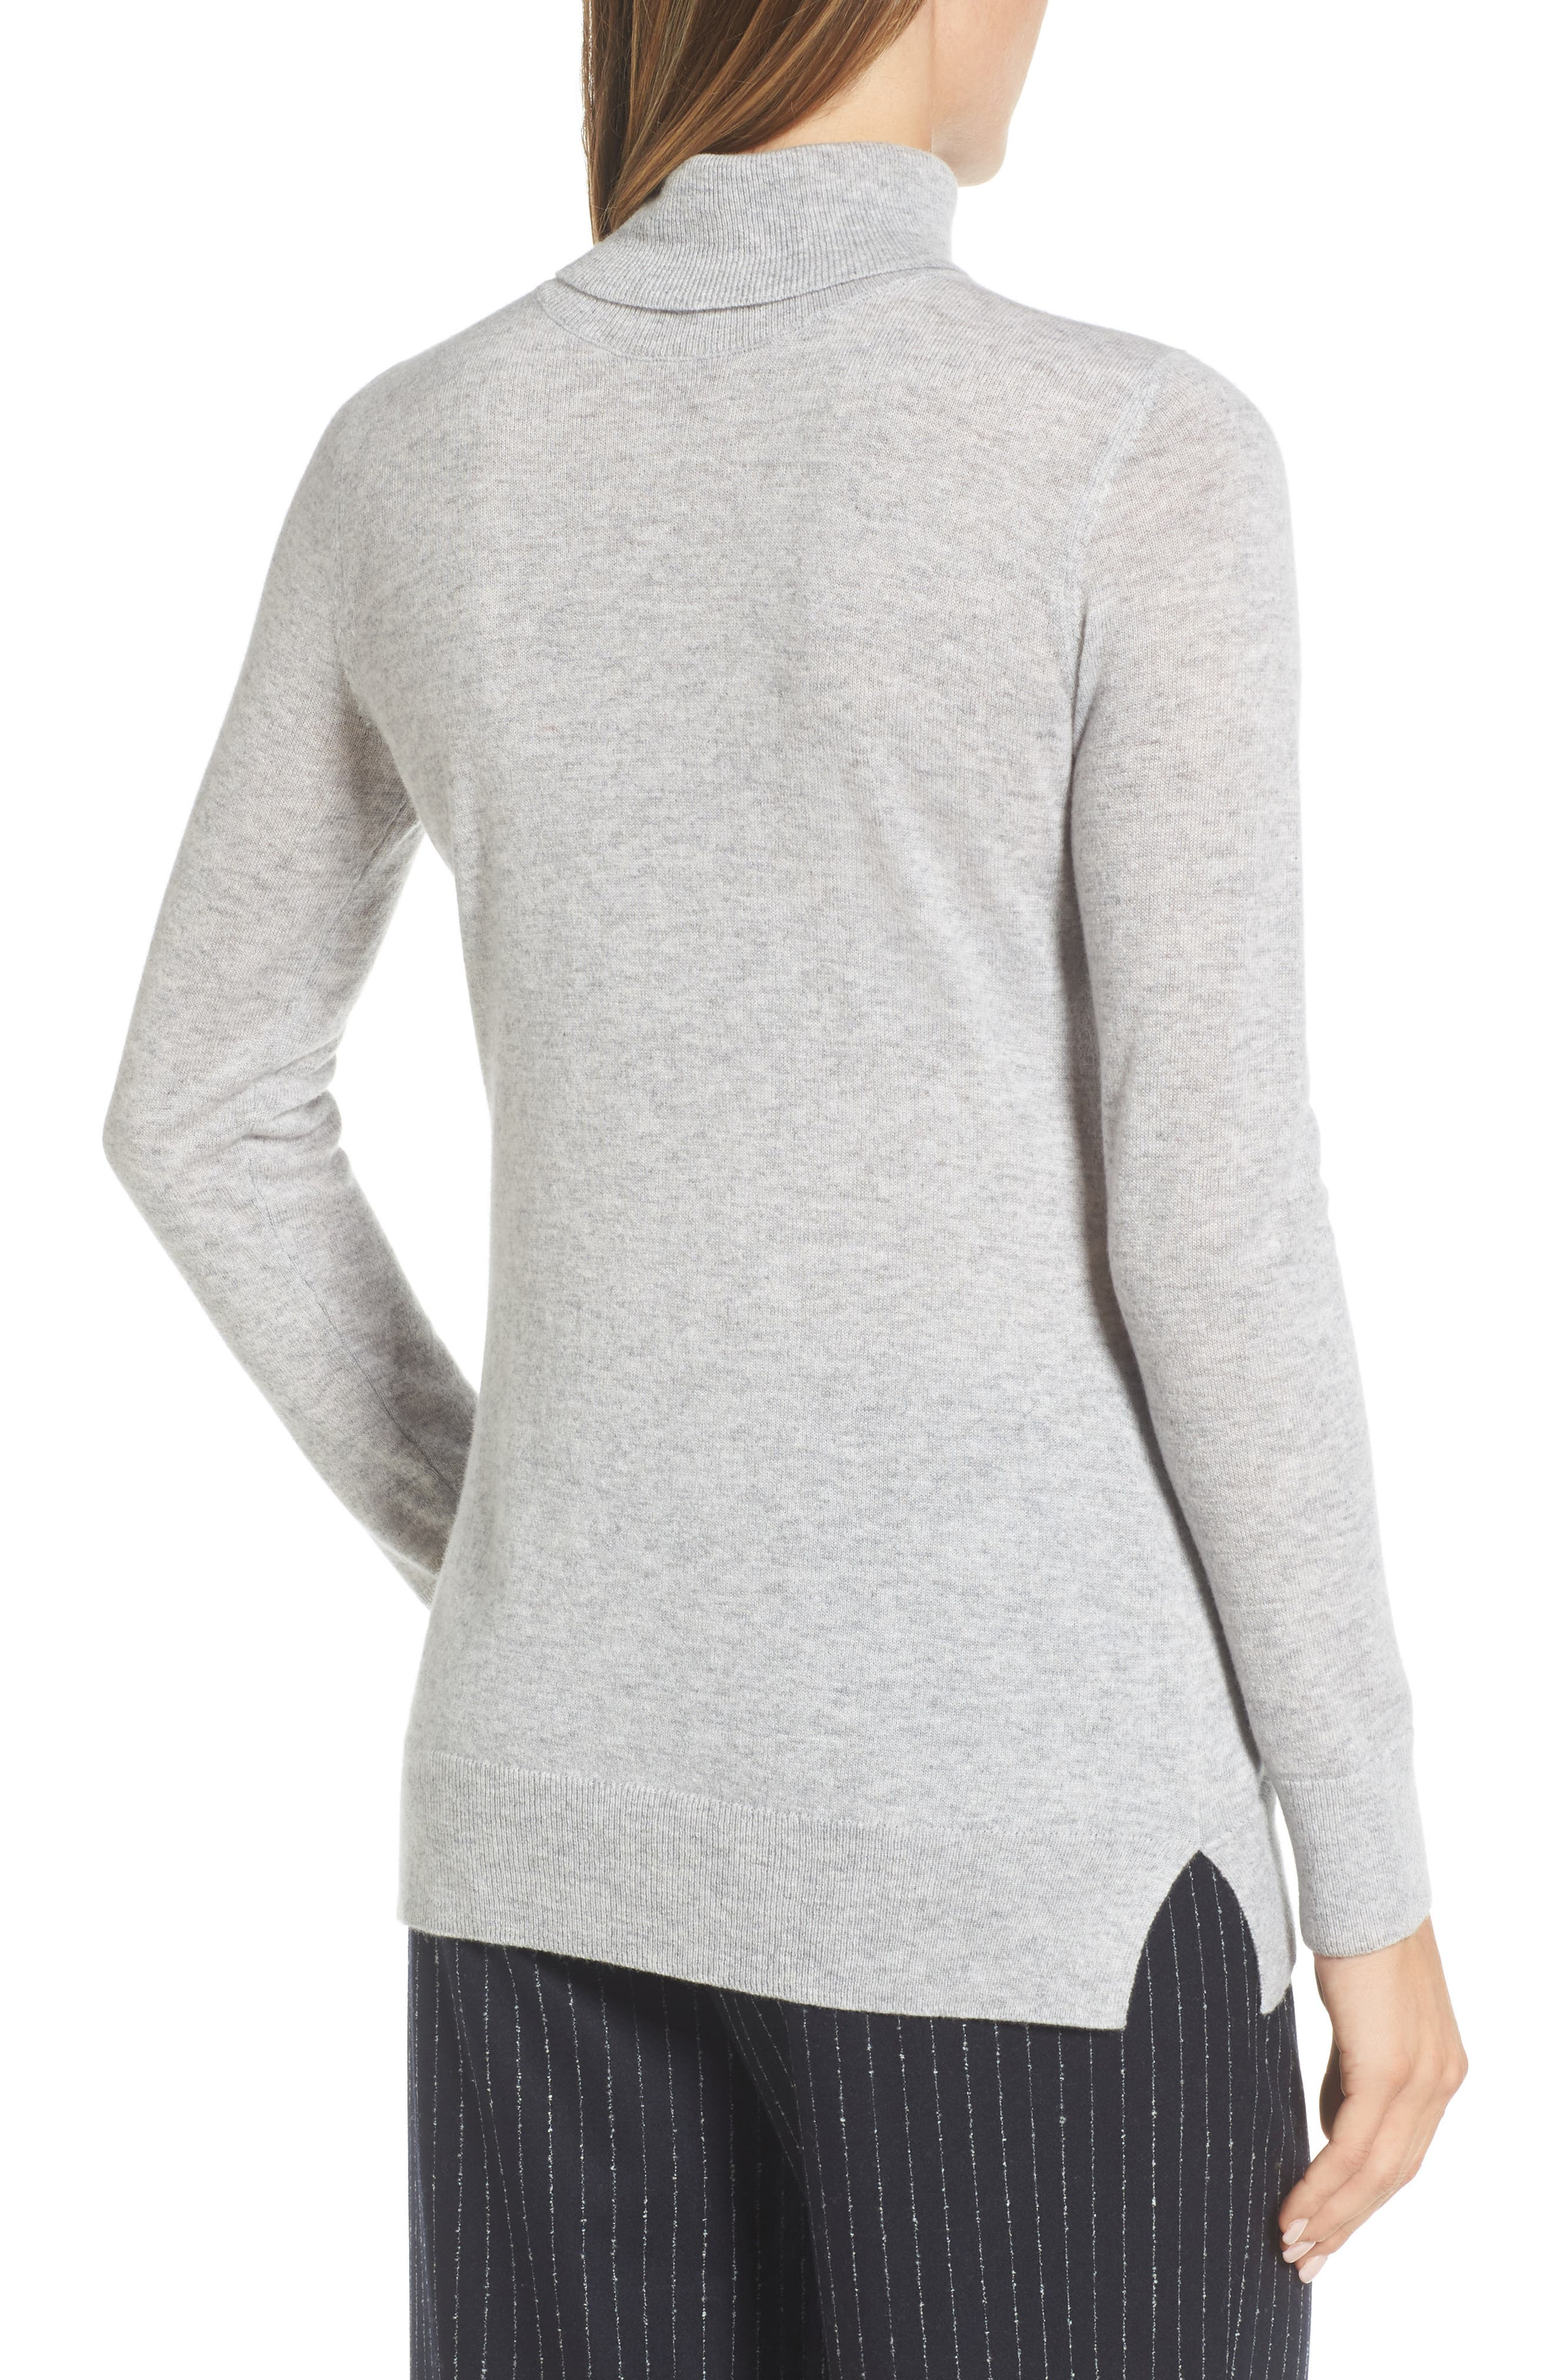 Turtleneck Cashmere Sweater,                             Alternate thumbnail 2, color,                             Grey Clay Heather